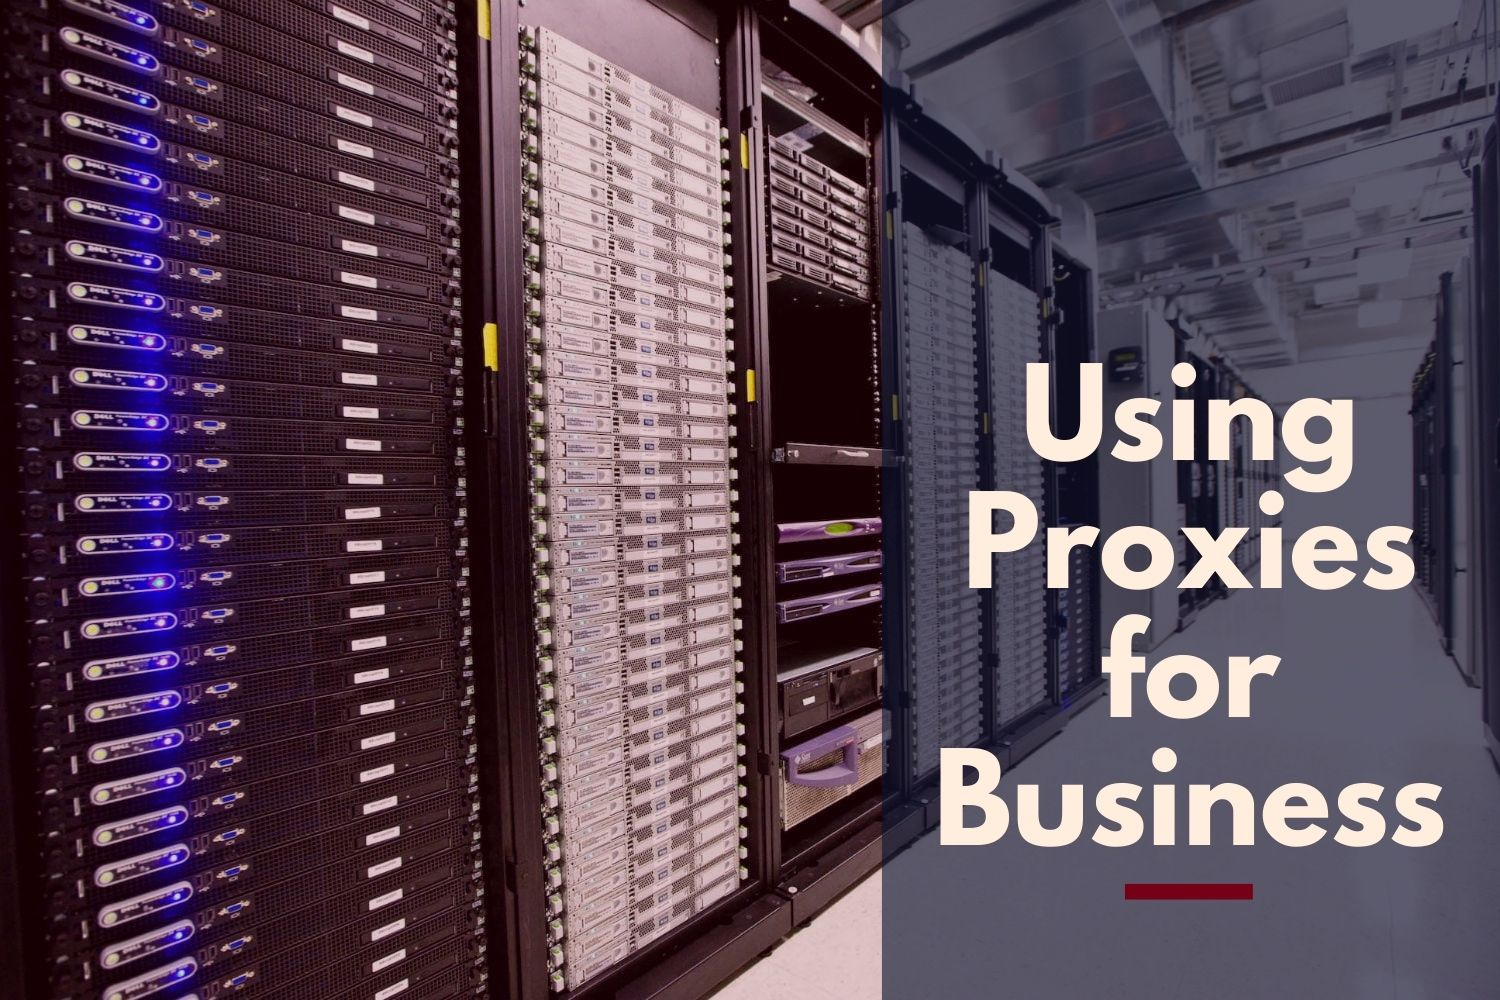 Using Proxies for Business